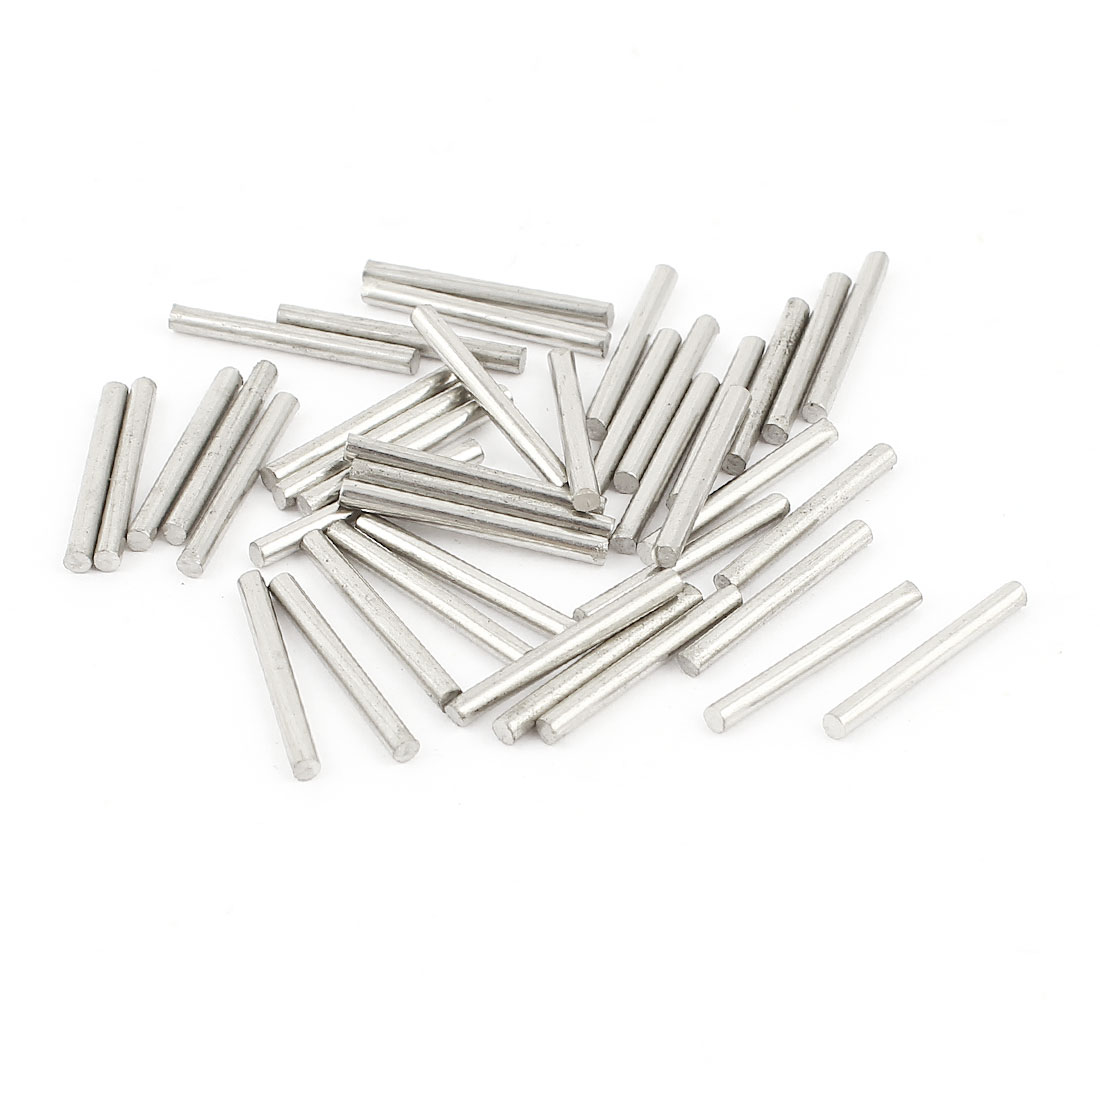 40Pcs 1.6mm Diameter Stainless Steel Motion Axle Circular Round Rod Bar 15mm Long